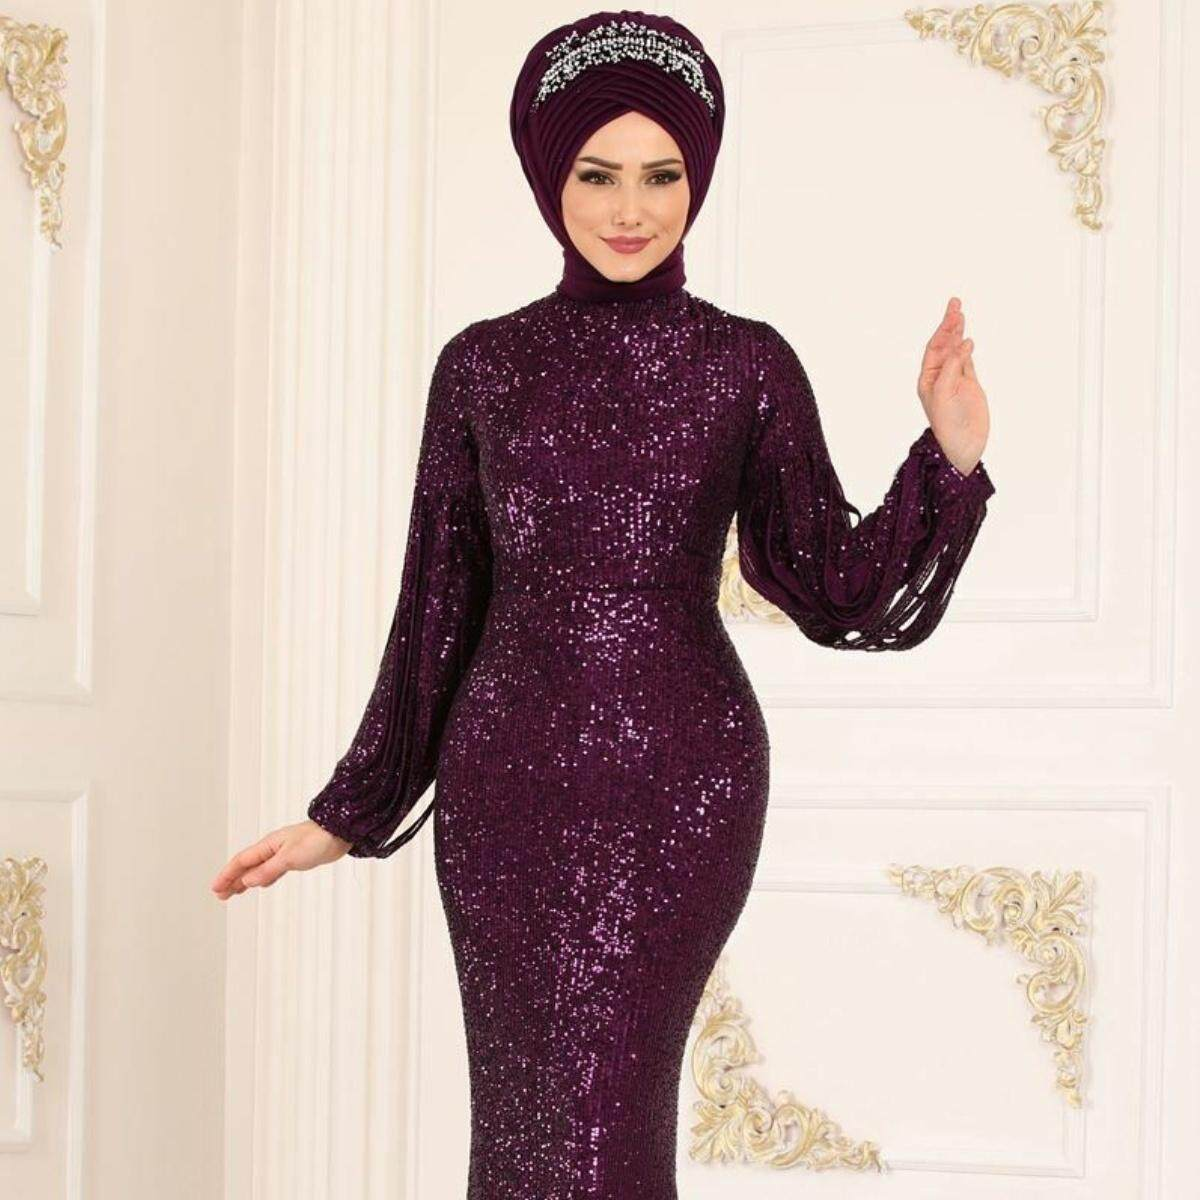 Women New Fashion Abaya Sequins Evening Dress Muslim Kaftan Hijab Burqa Lace Long Sleeve Islamic Maxi Dress Without Hijab Loose Sequins Embroidery